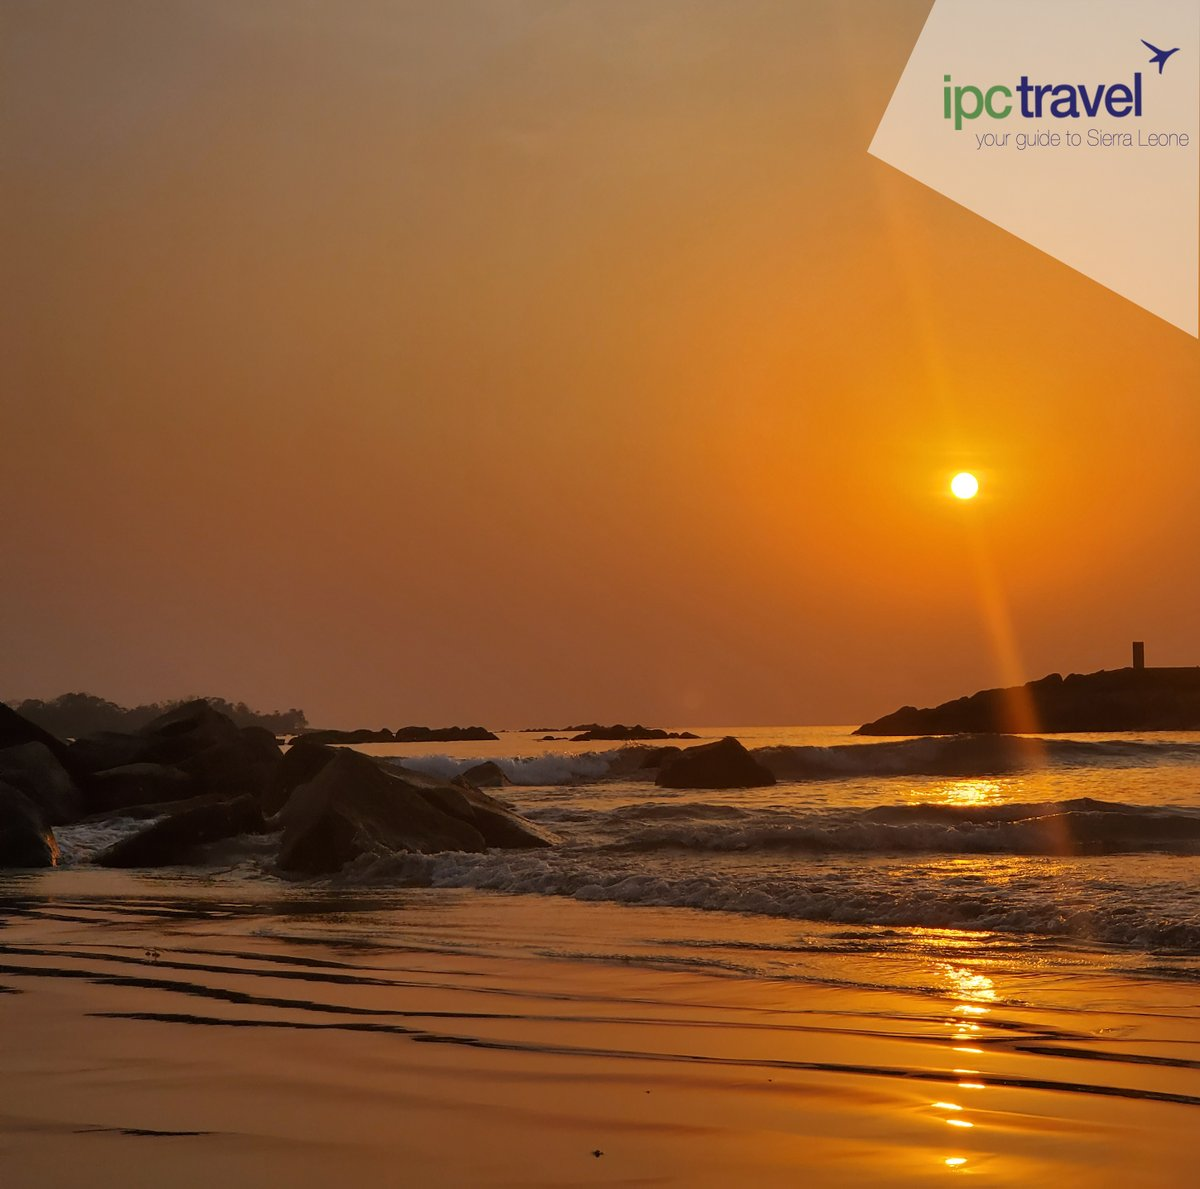 We send you positive vibes this weekend. What is more refreshing than crashing waves on the rocks, sand on your toes and mesmerizing sunsets?  #ipctravel agency#yourguidetosierraleone #sierraleone #beach #sunsandsea #sunset #sunsetvibes #happyweekend #sunsetviews #salonetwitter https://t.co/go0wFYhHFn